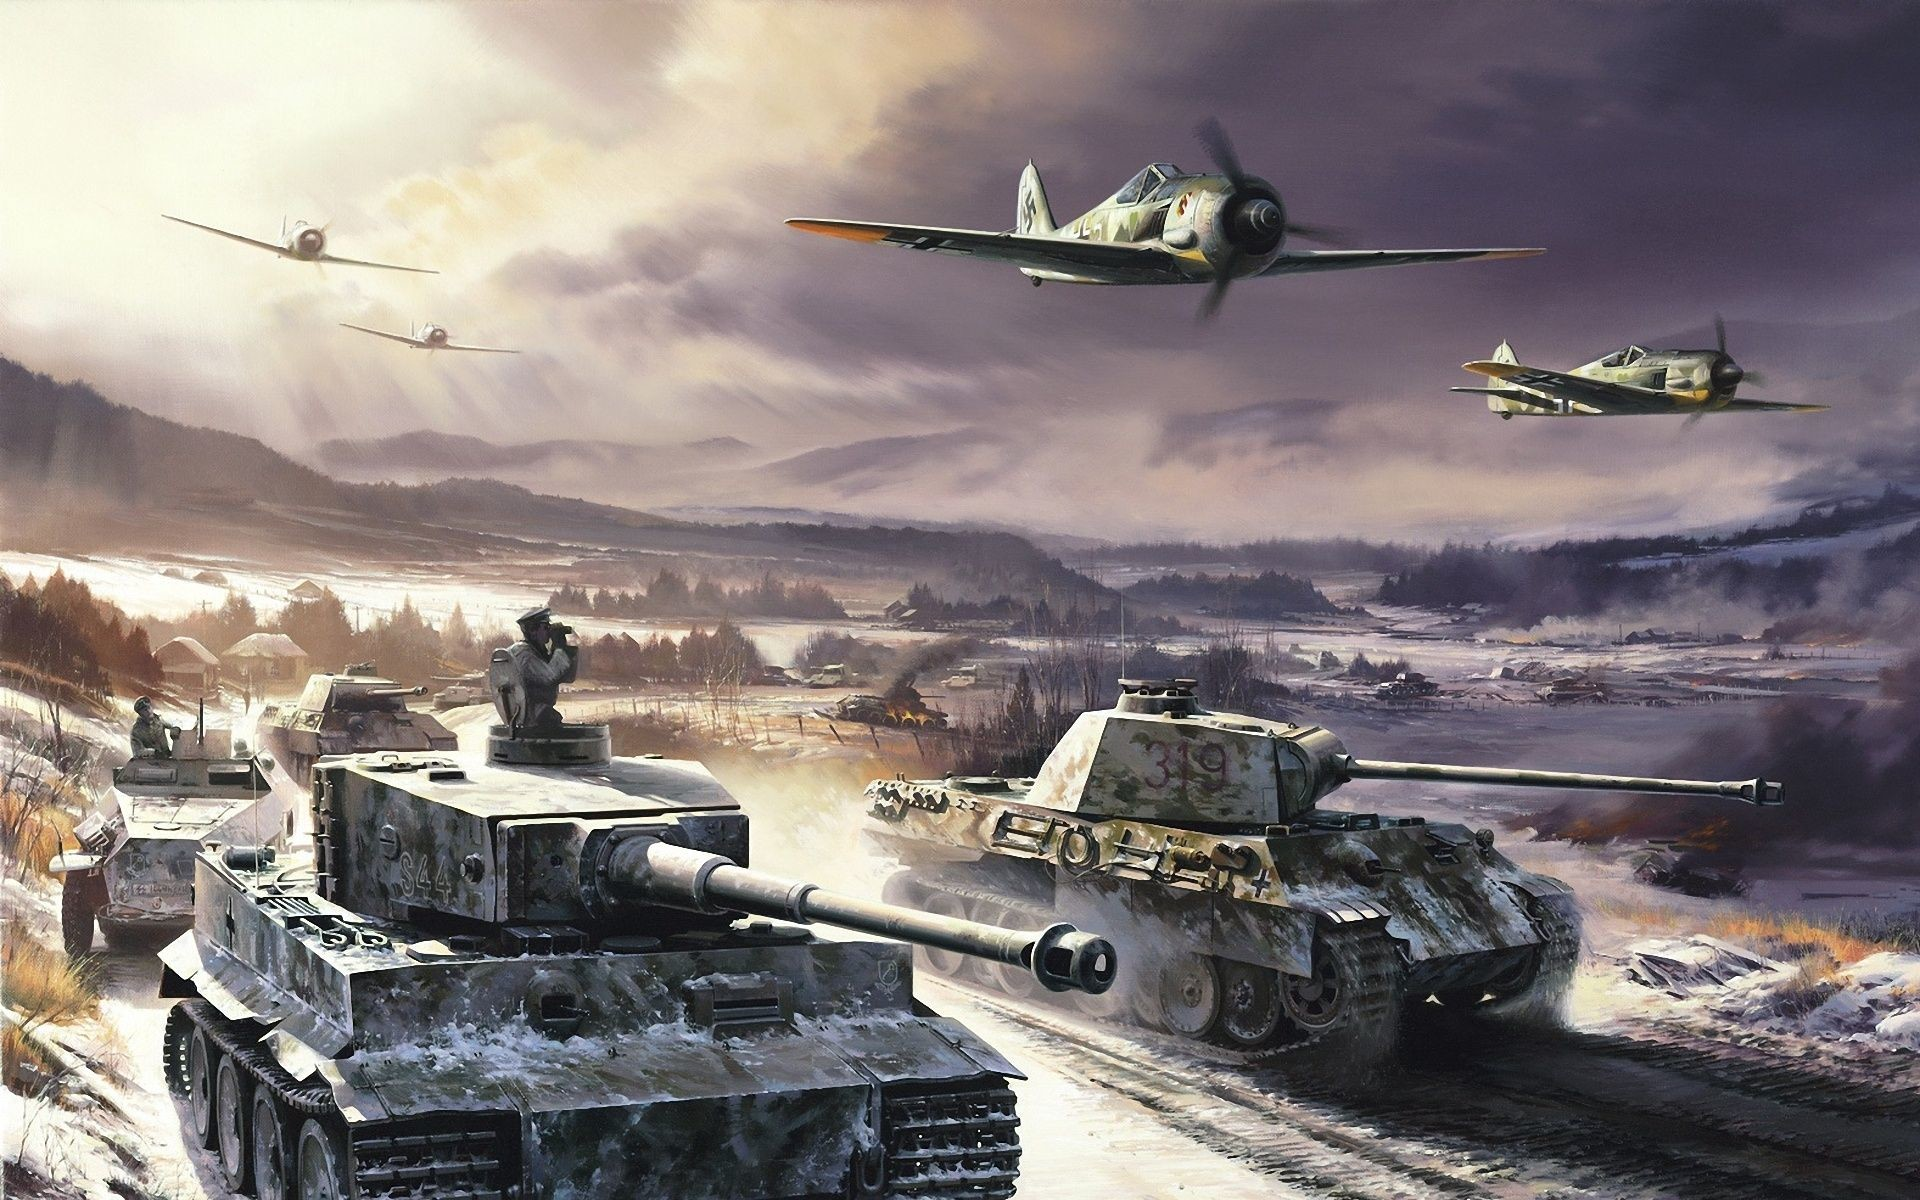 Res: 1920x1200, old-miltary-tanks-high-definition-wallpaper-tank-image-download-free.jpg  (1920×1200)